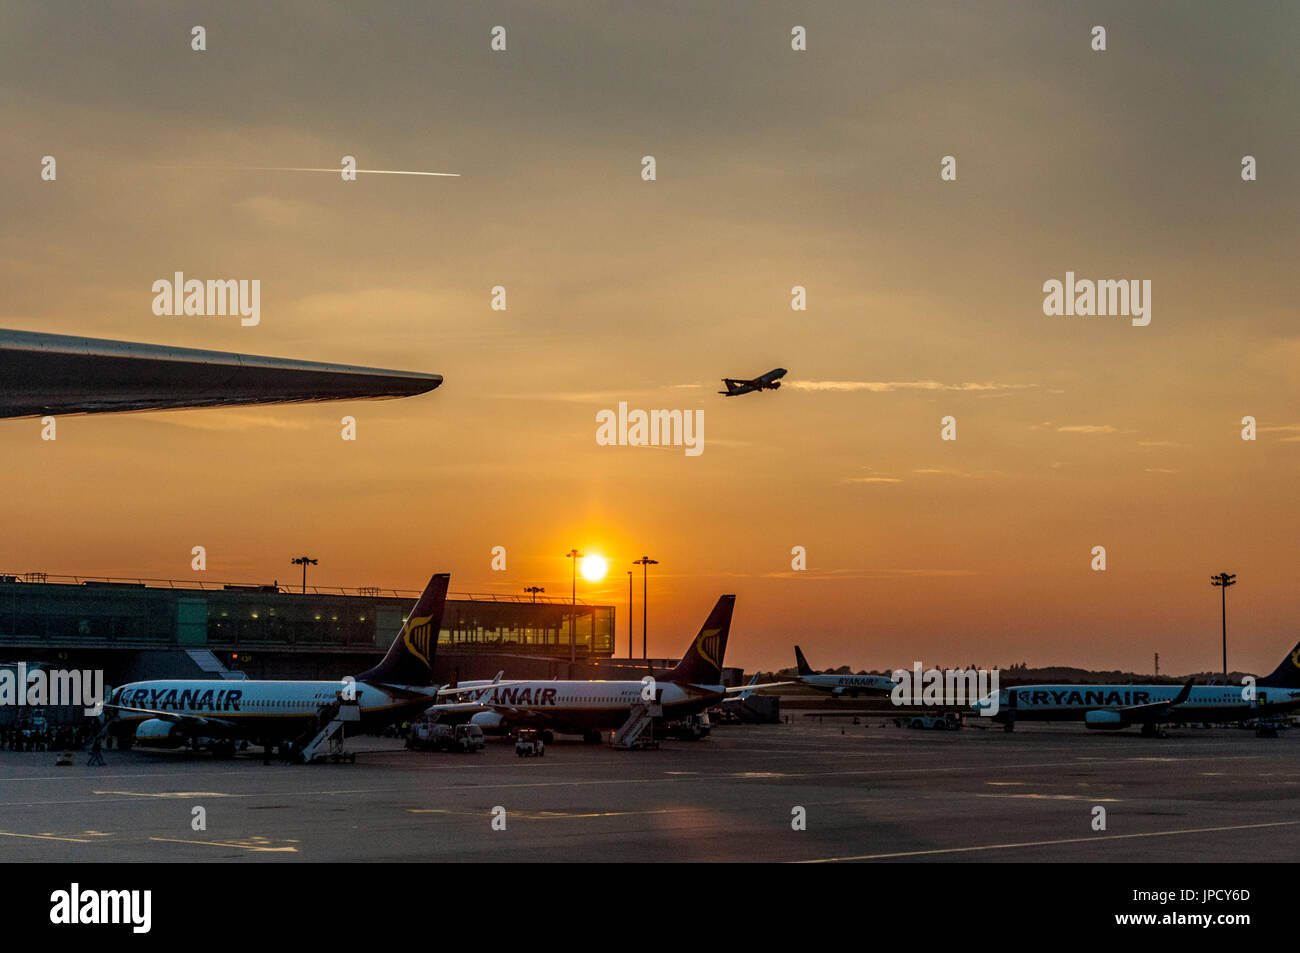 London Stansted Airport aircraft taking off at sunset. - Stock Image